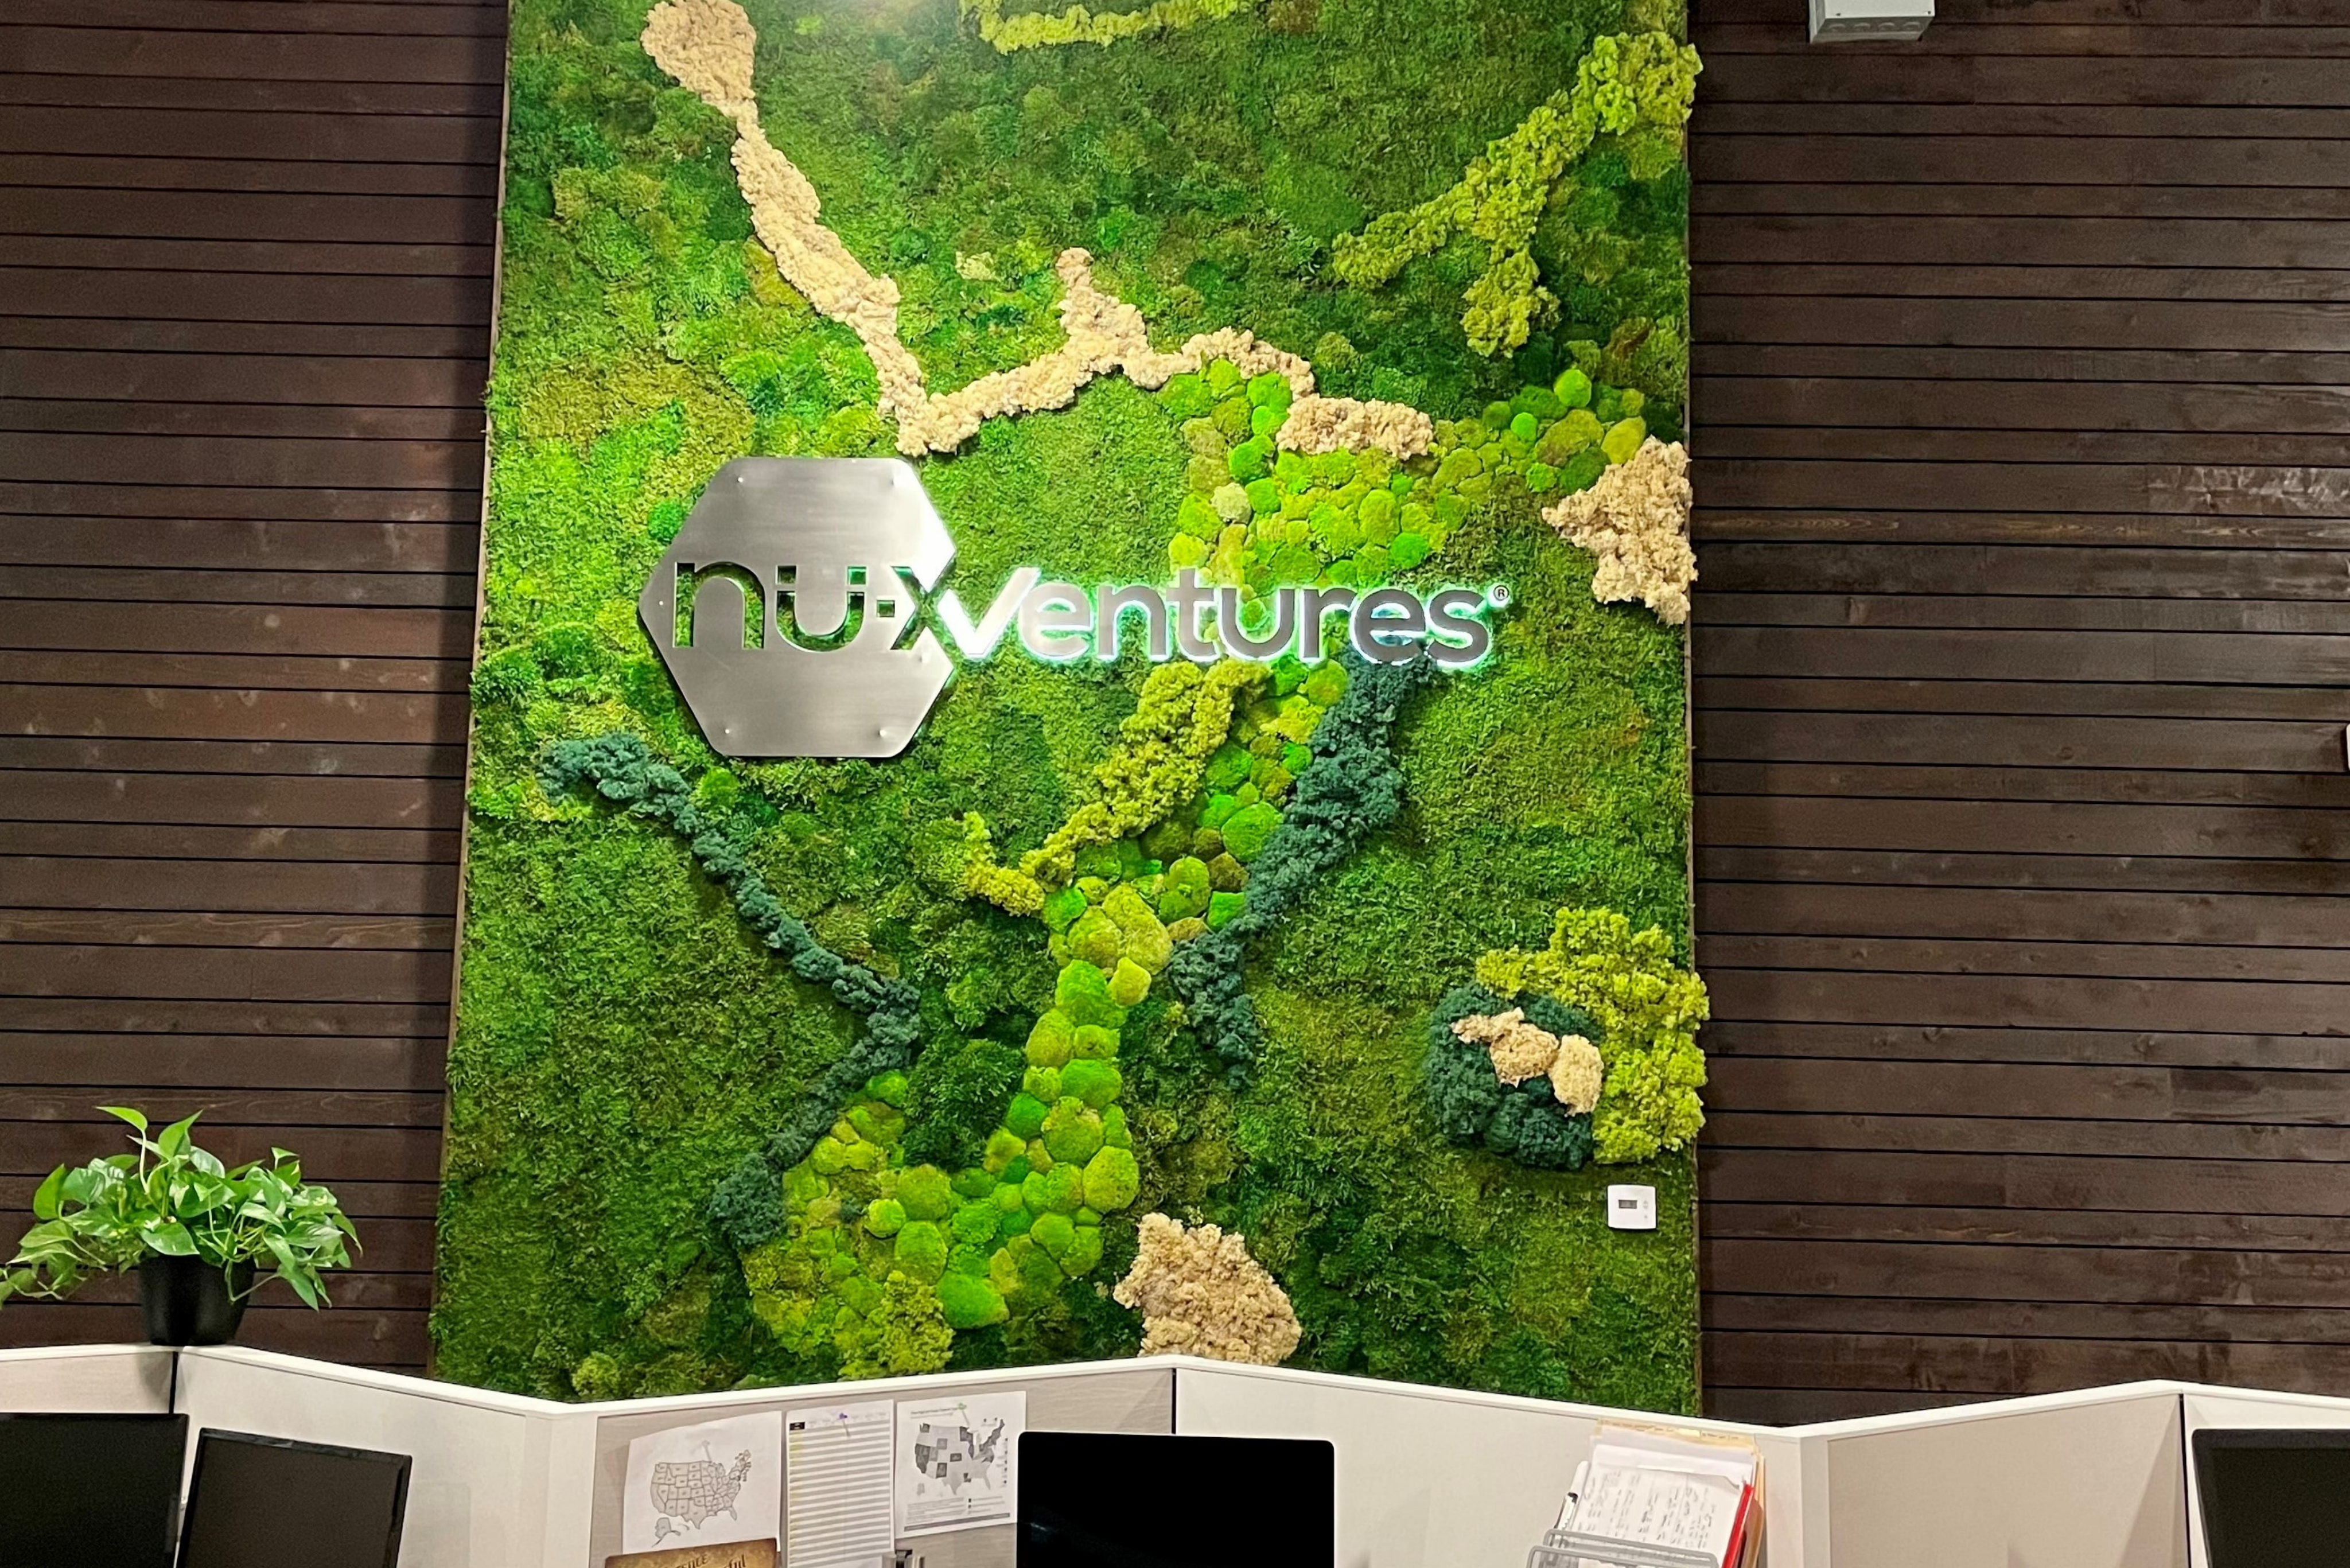 A moss wall in an office space